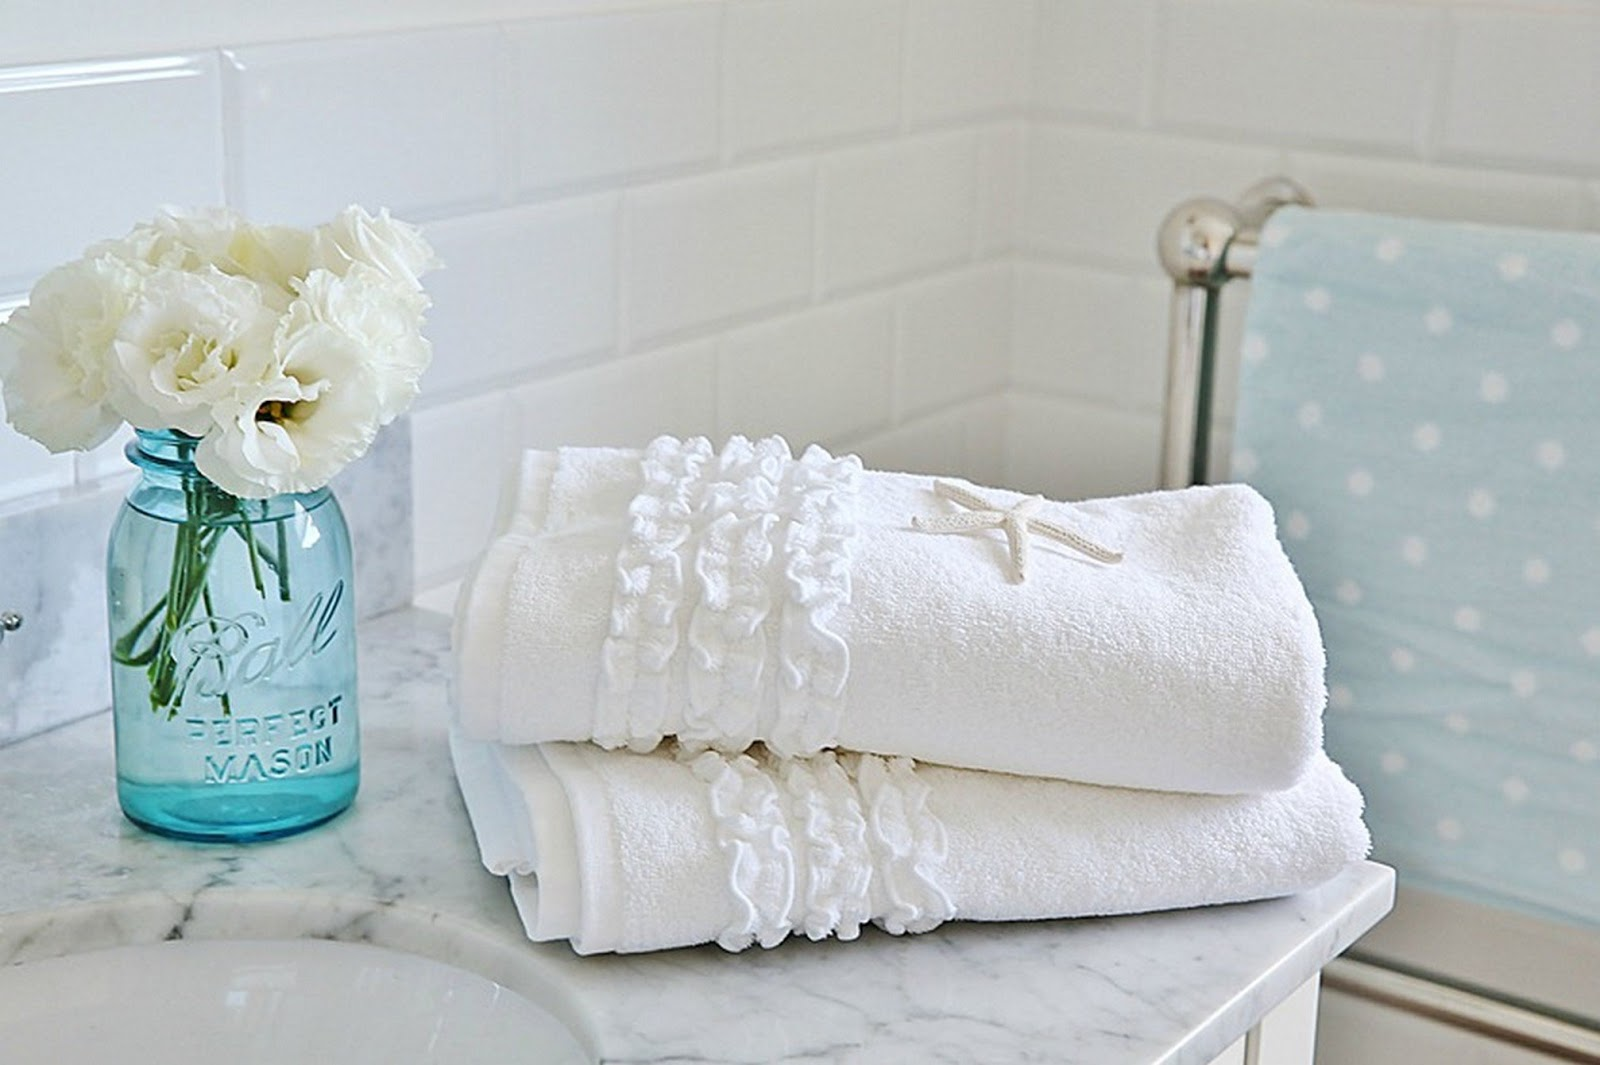 How To Make A Bathroom More Welcoming With Expert Tips - Elegant decorative bath towels for small bathroom ideas